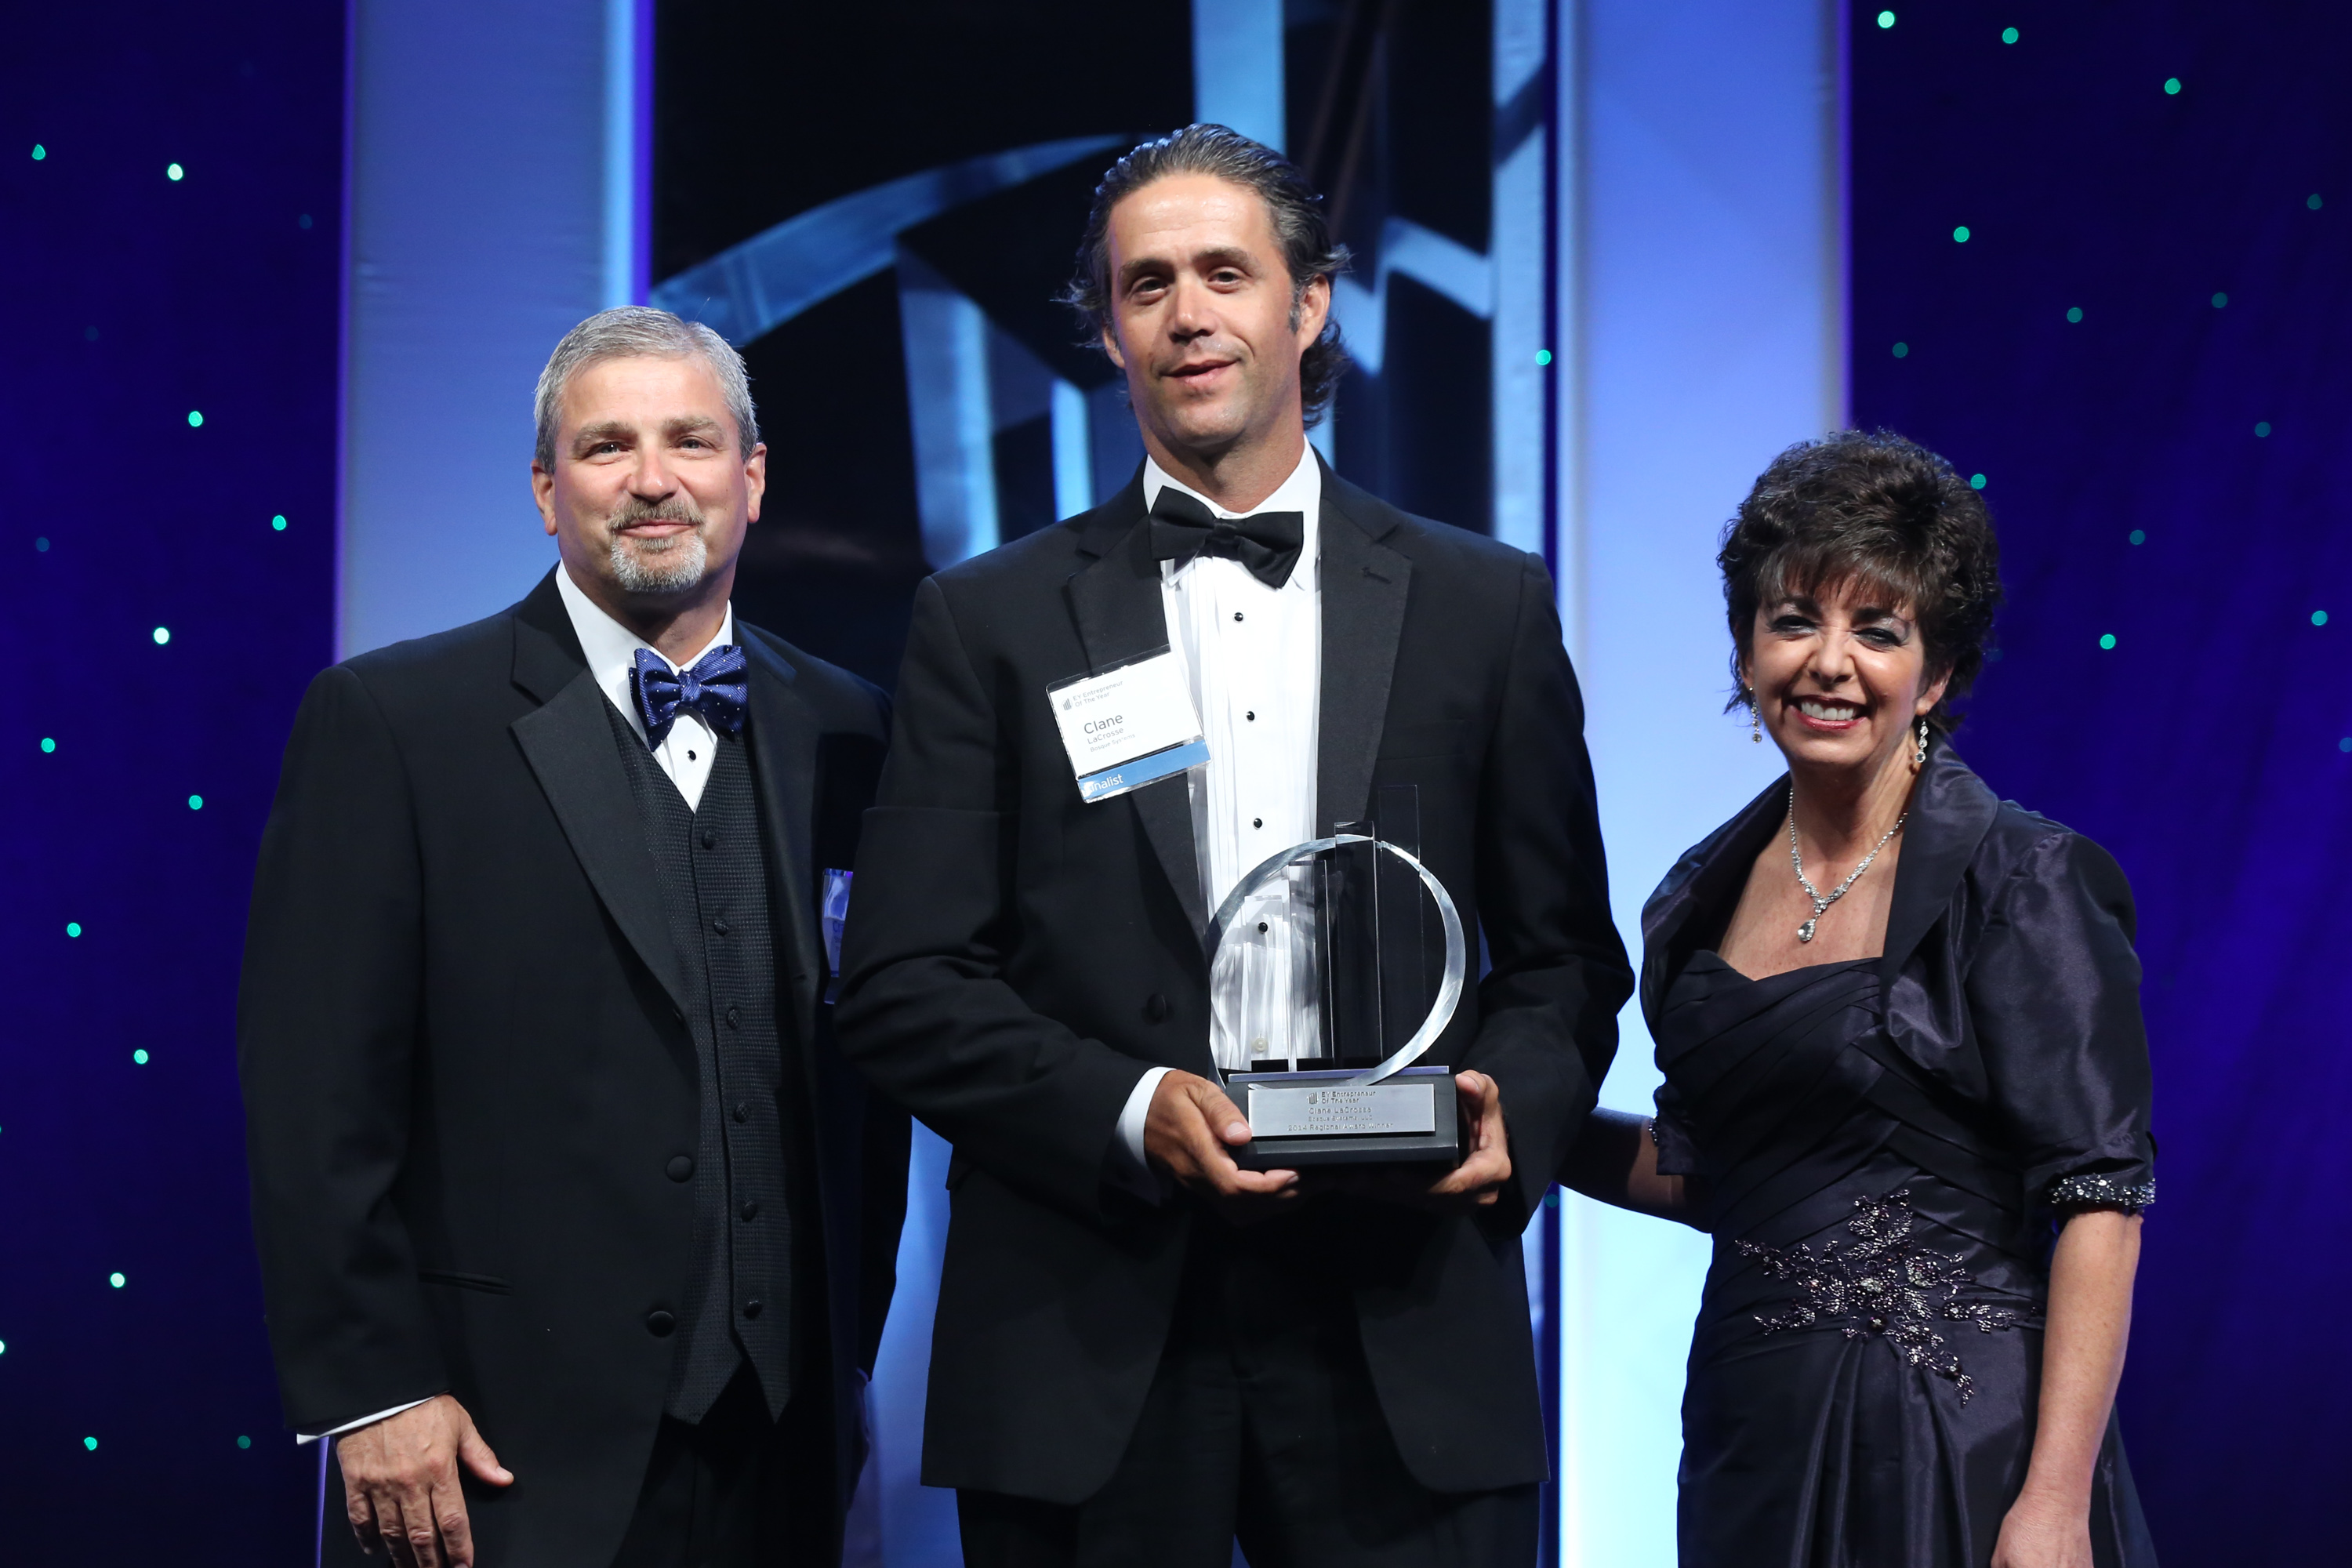 Clane LaCrosse, winner of the EY Entrepreneur Of The Year(tm) 2014 Southwest Region Cleantech Category